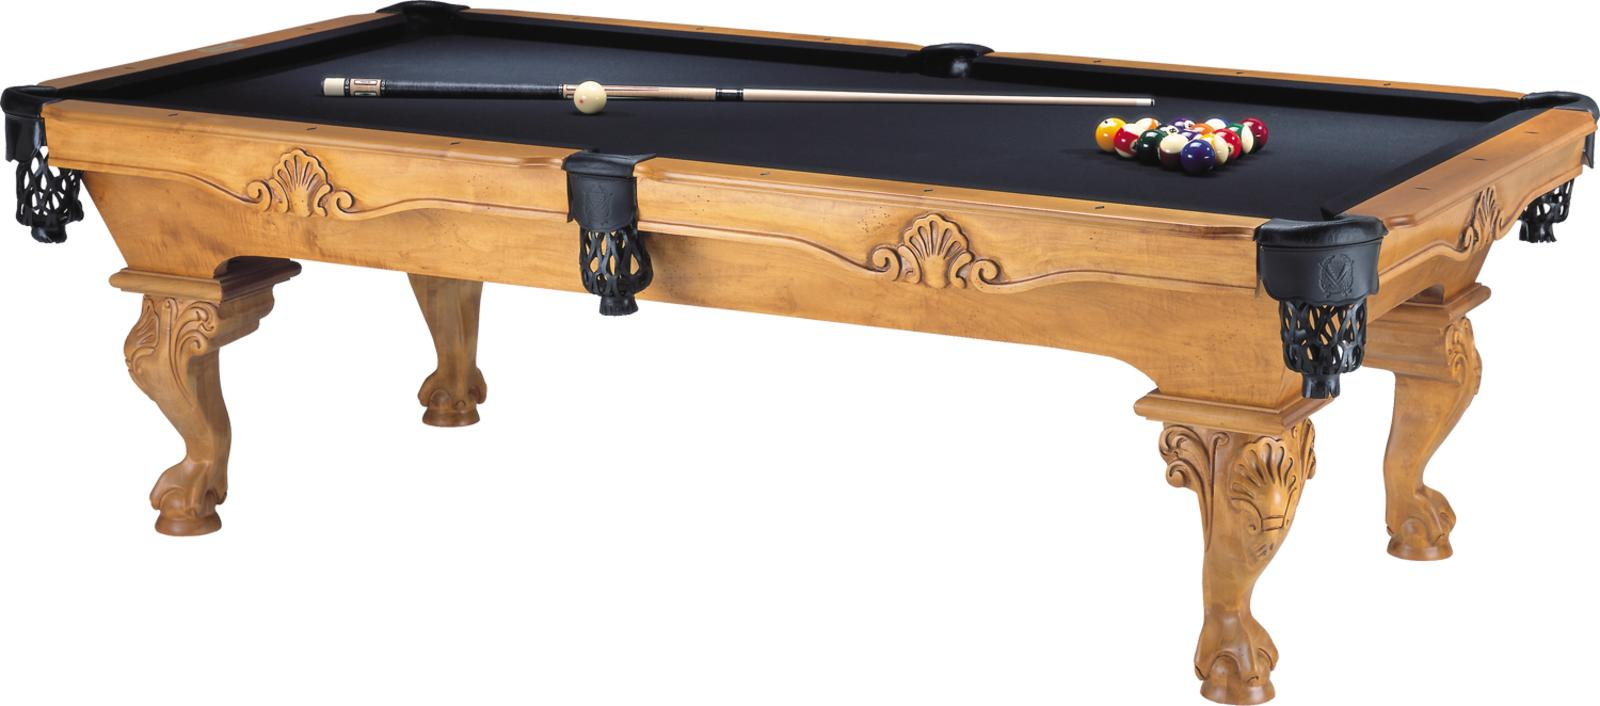 Winslow austin billiards austin texas 39 premier pool for At the table or on the table